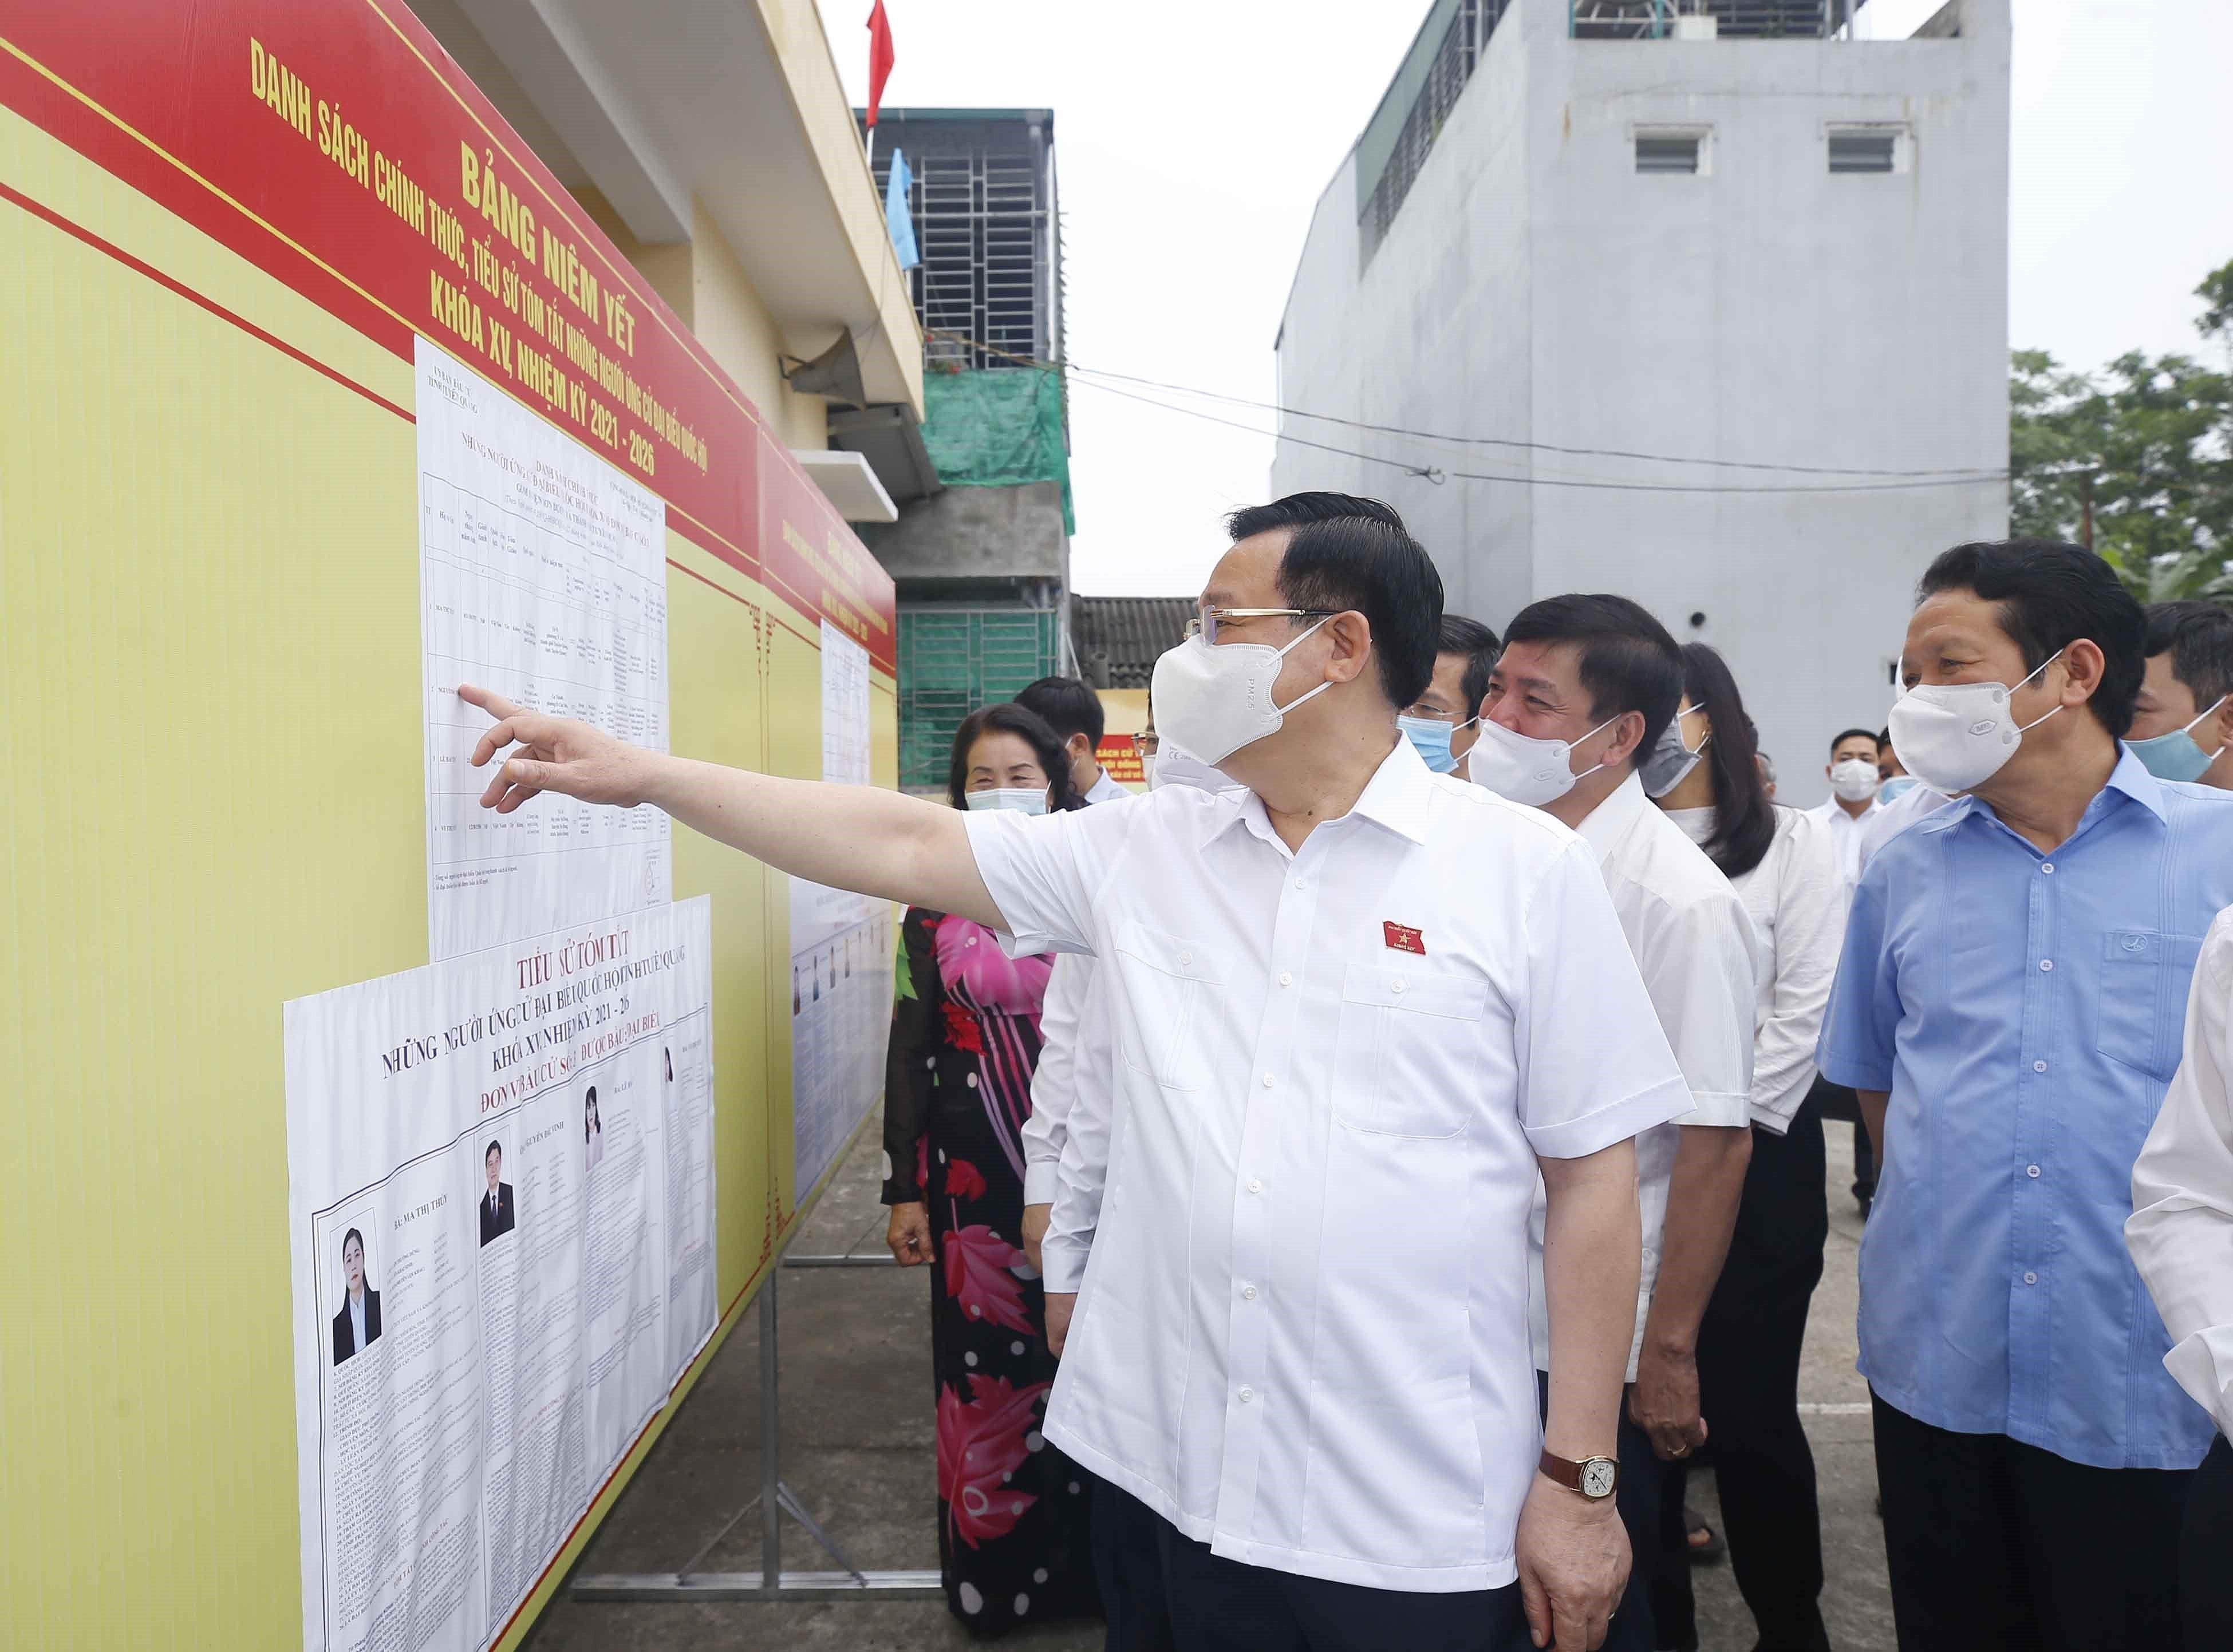 Legislative leader inspects election preparations in Tuyen Quang province hinh anh 3